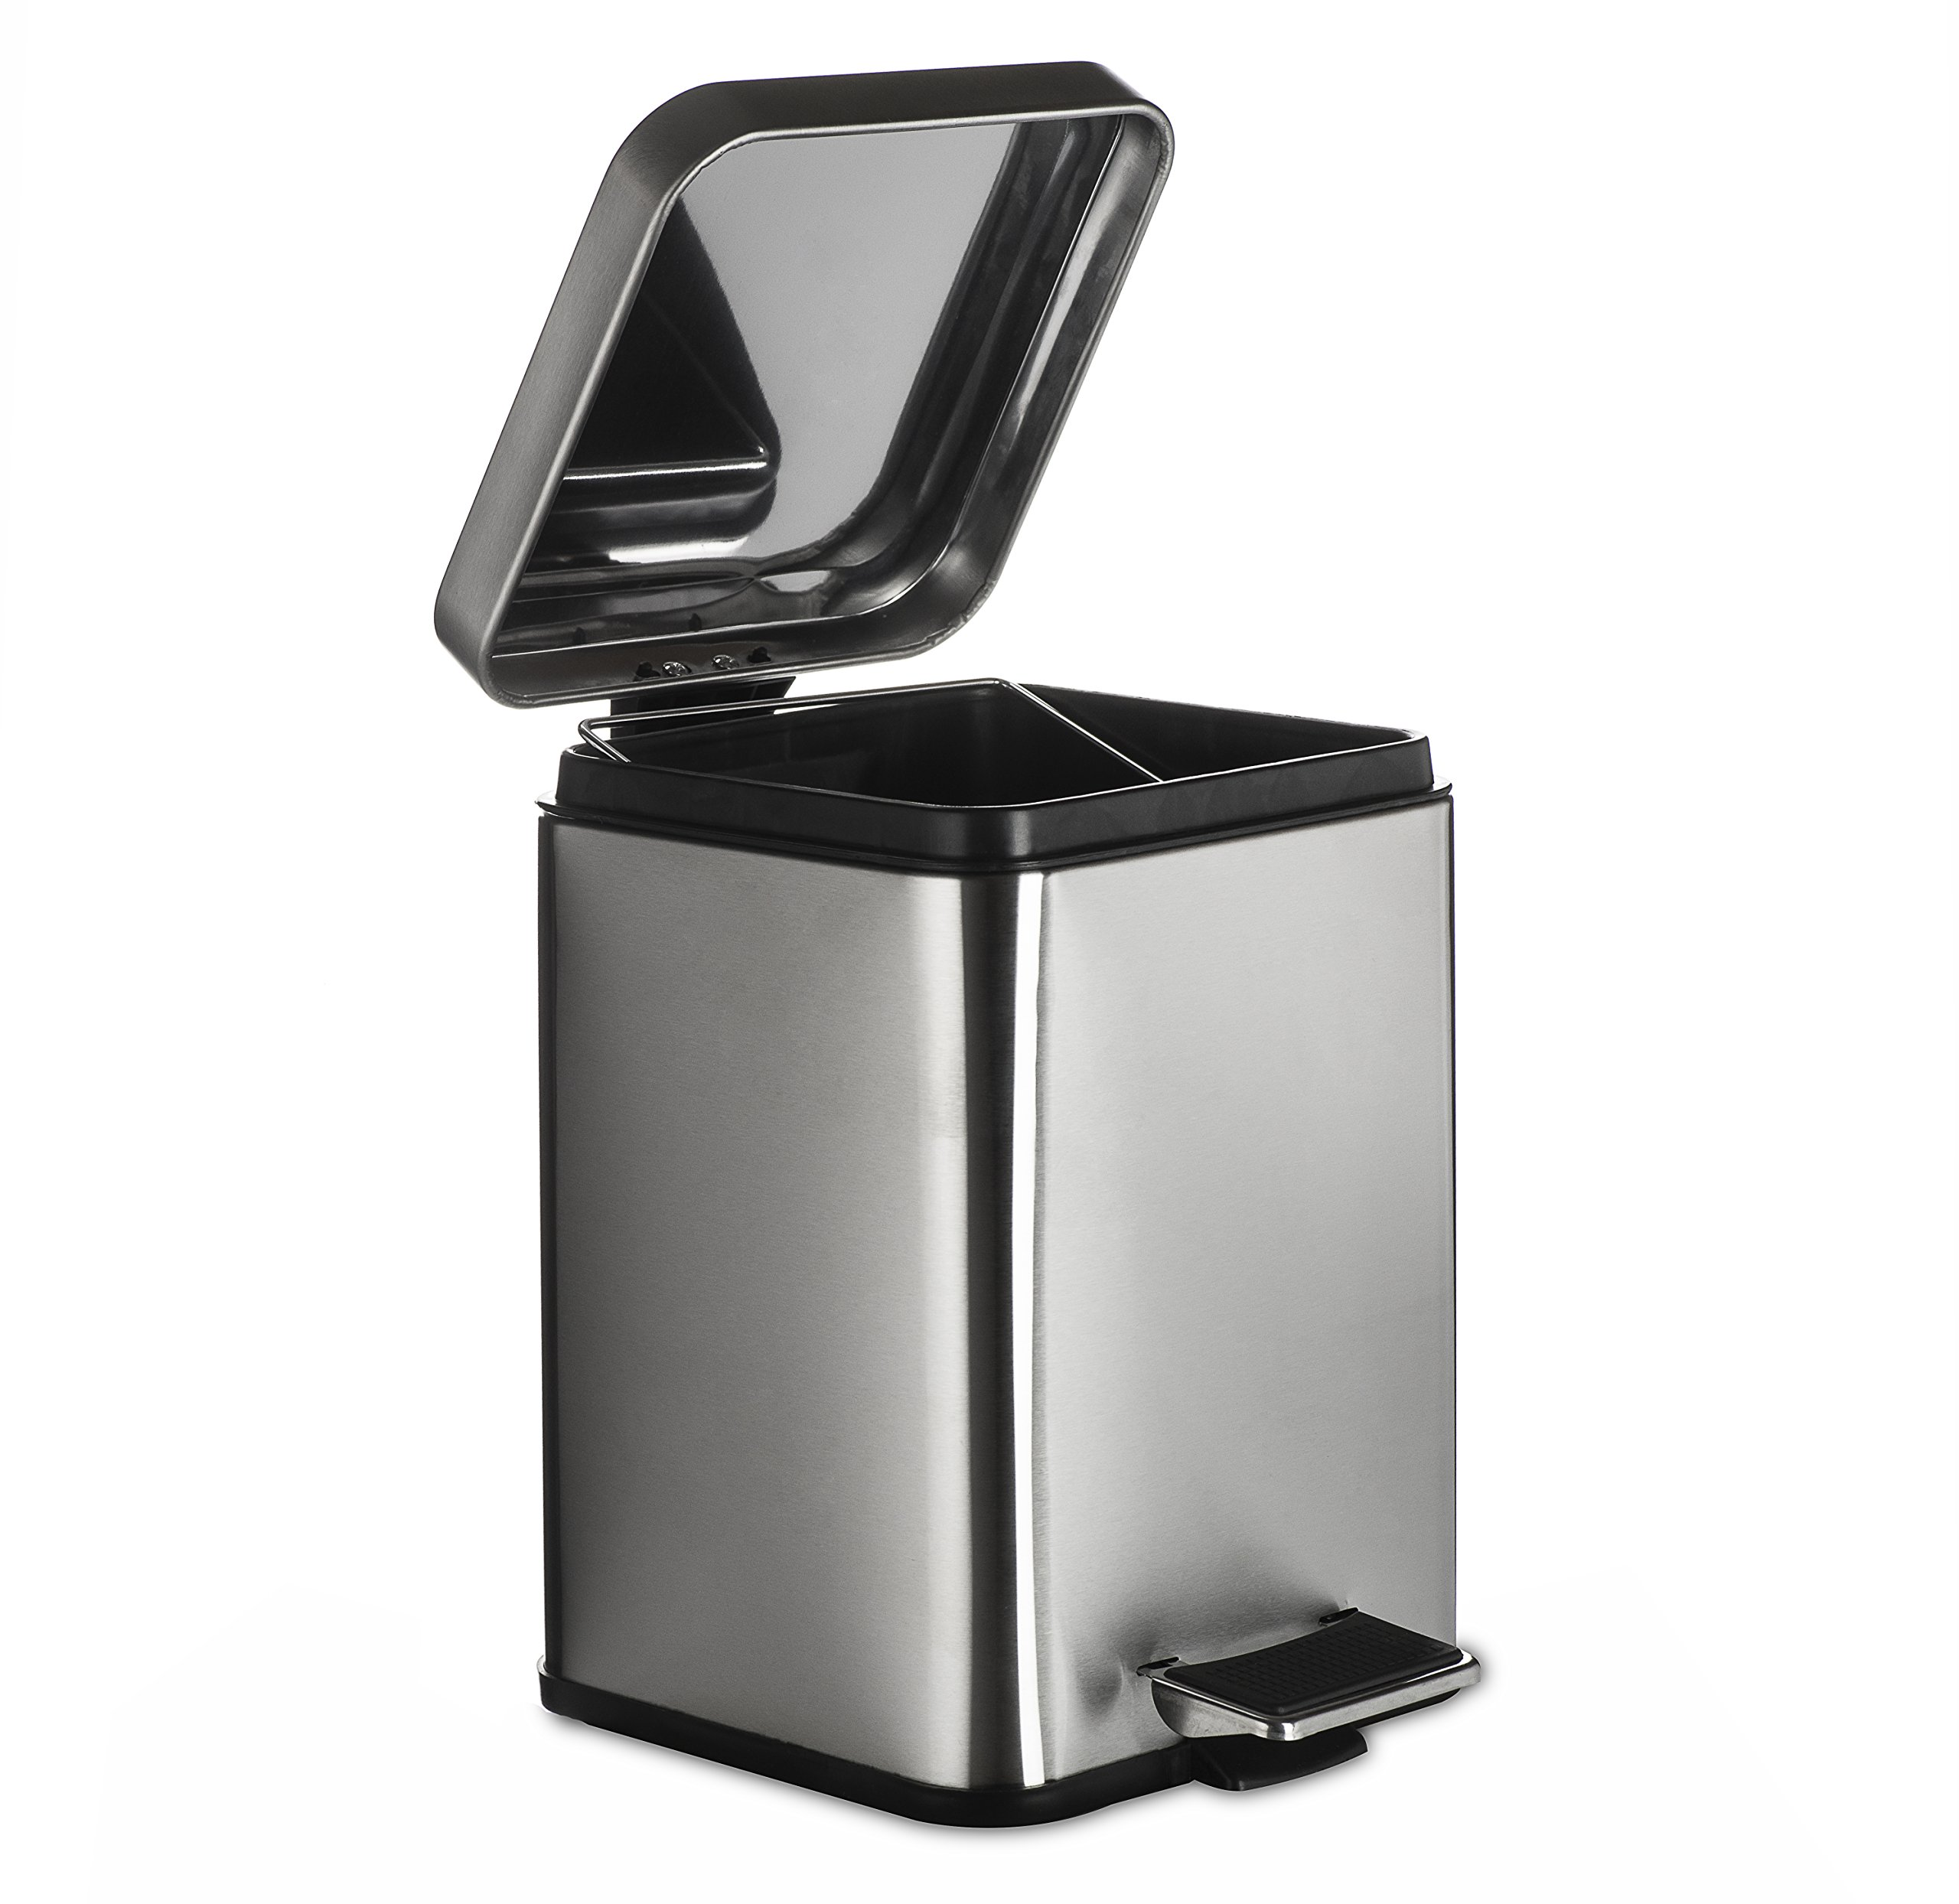 AMG and Enchante Accessories, Rectangular Waste Bin, 5L Garbage Trash Can with Step Foot Pedal, WB05B BNI, Brushed Nickel